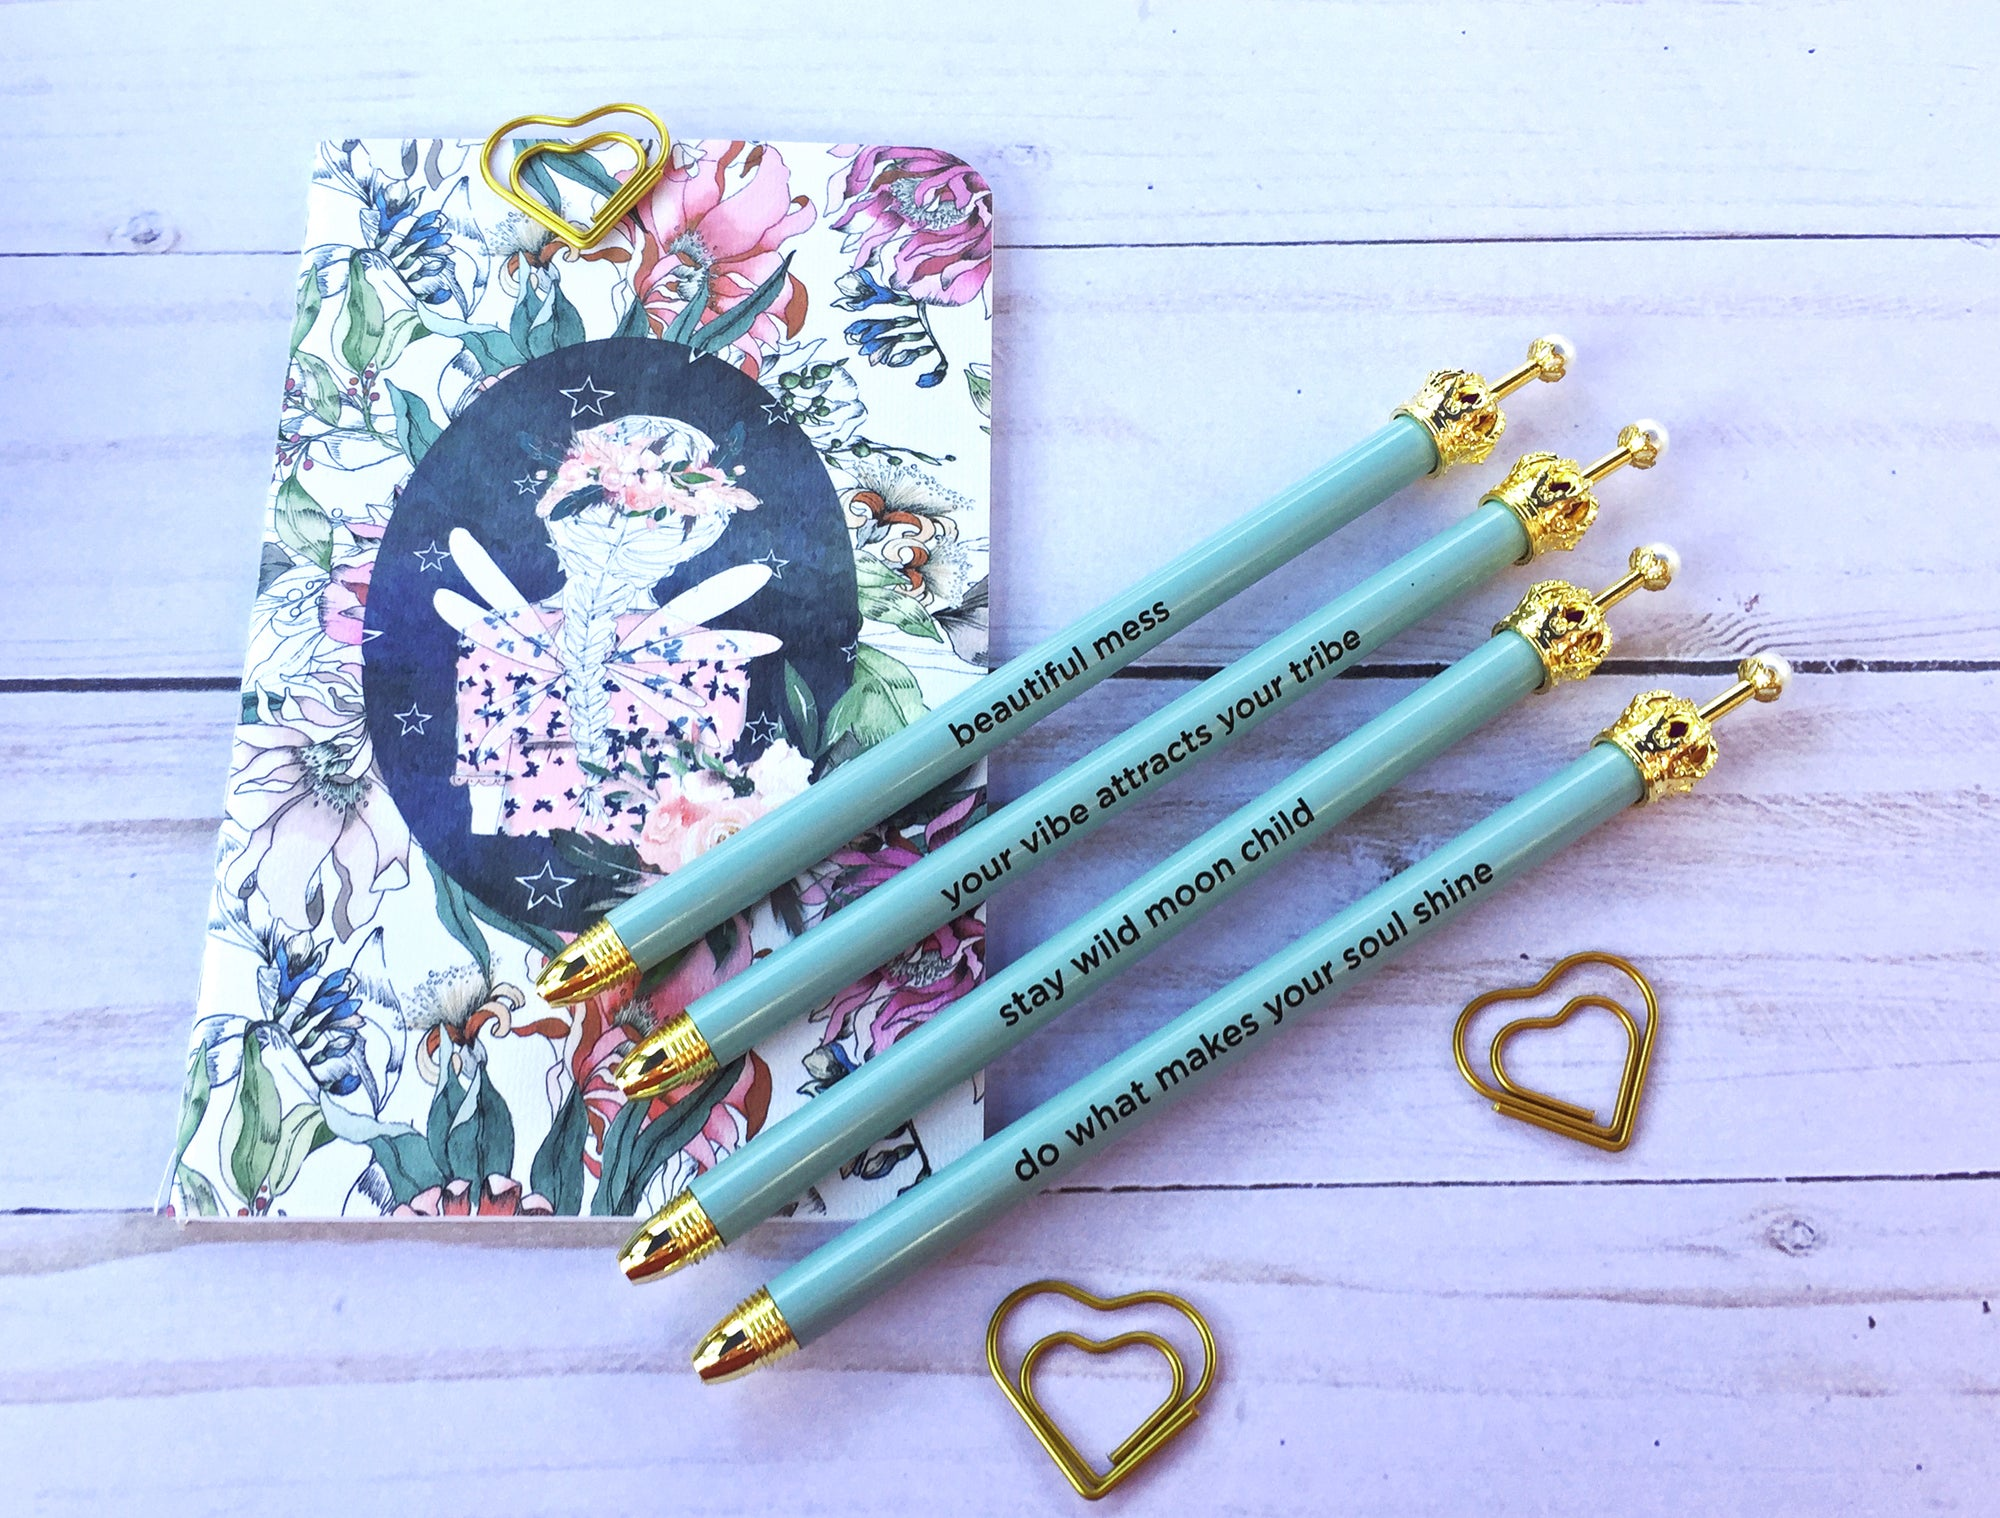 Light Blue Crown Ballpoint Pen with Cute Mantra